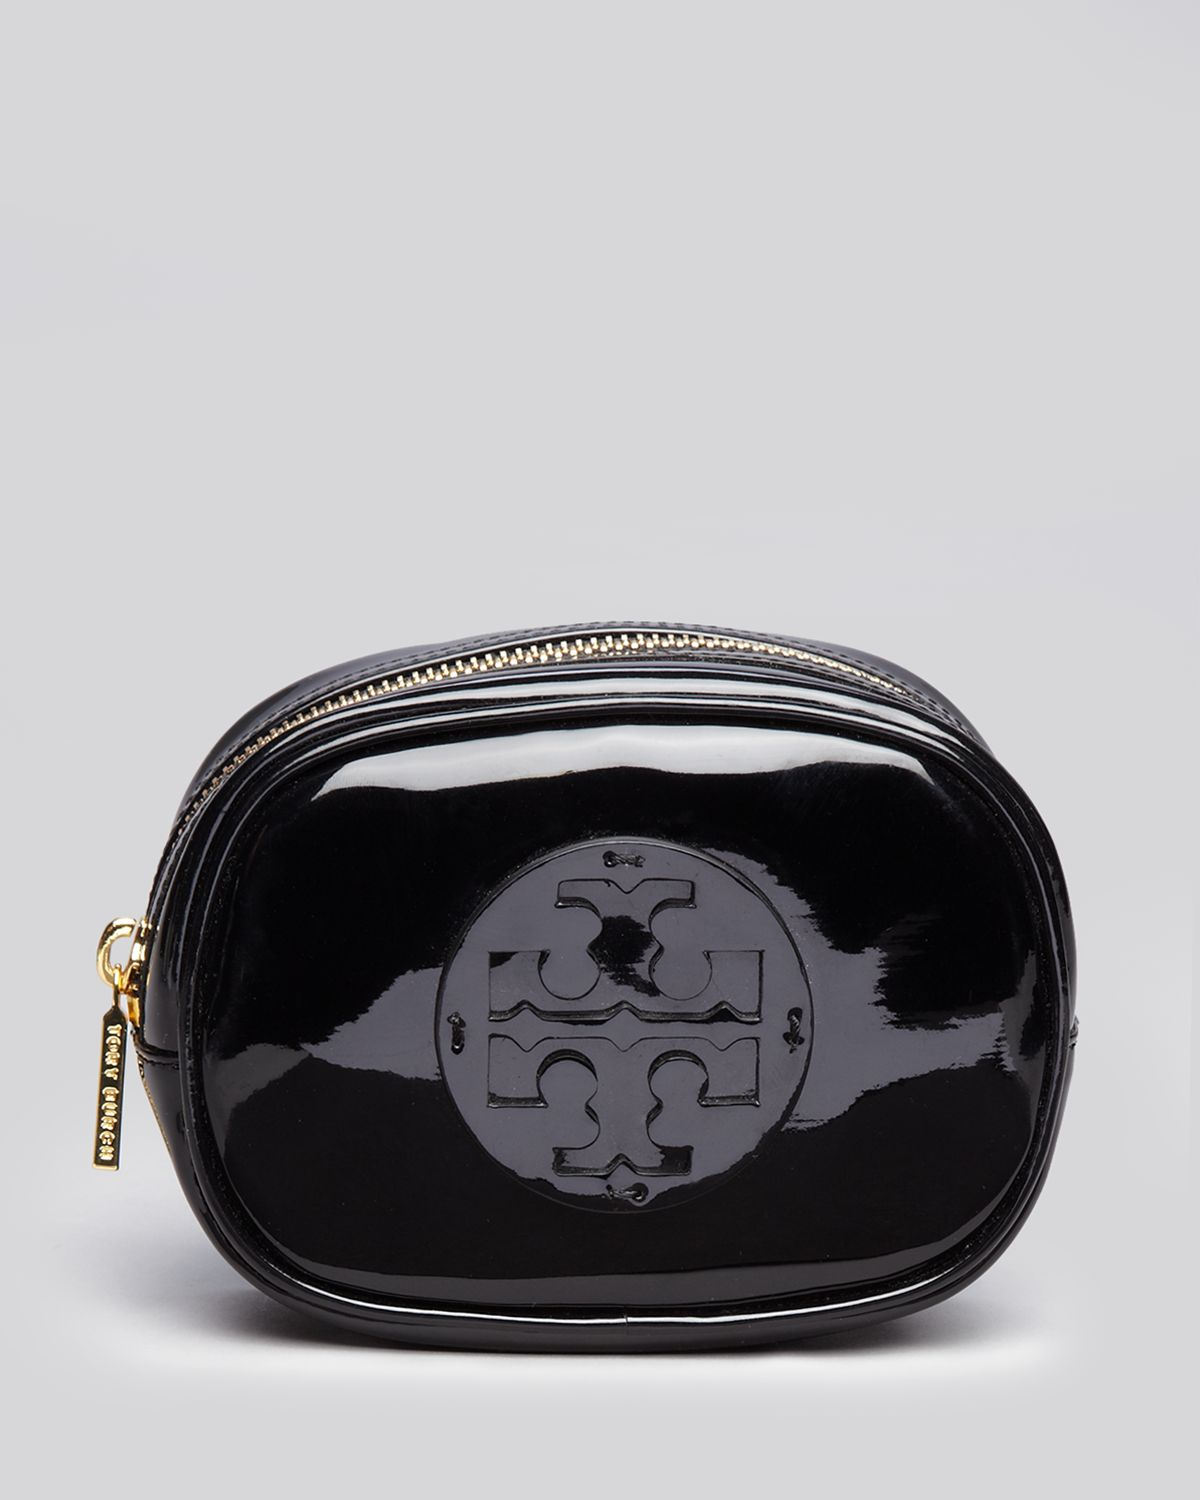 Tory Burch Cosmetic Case Small Patent Black Lyst